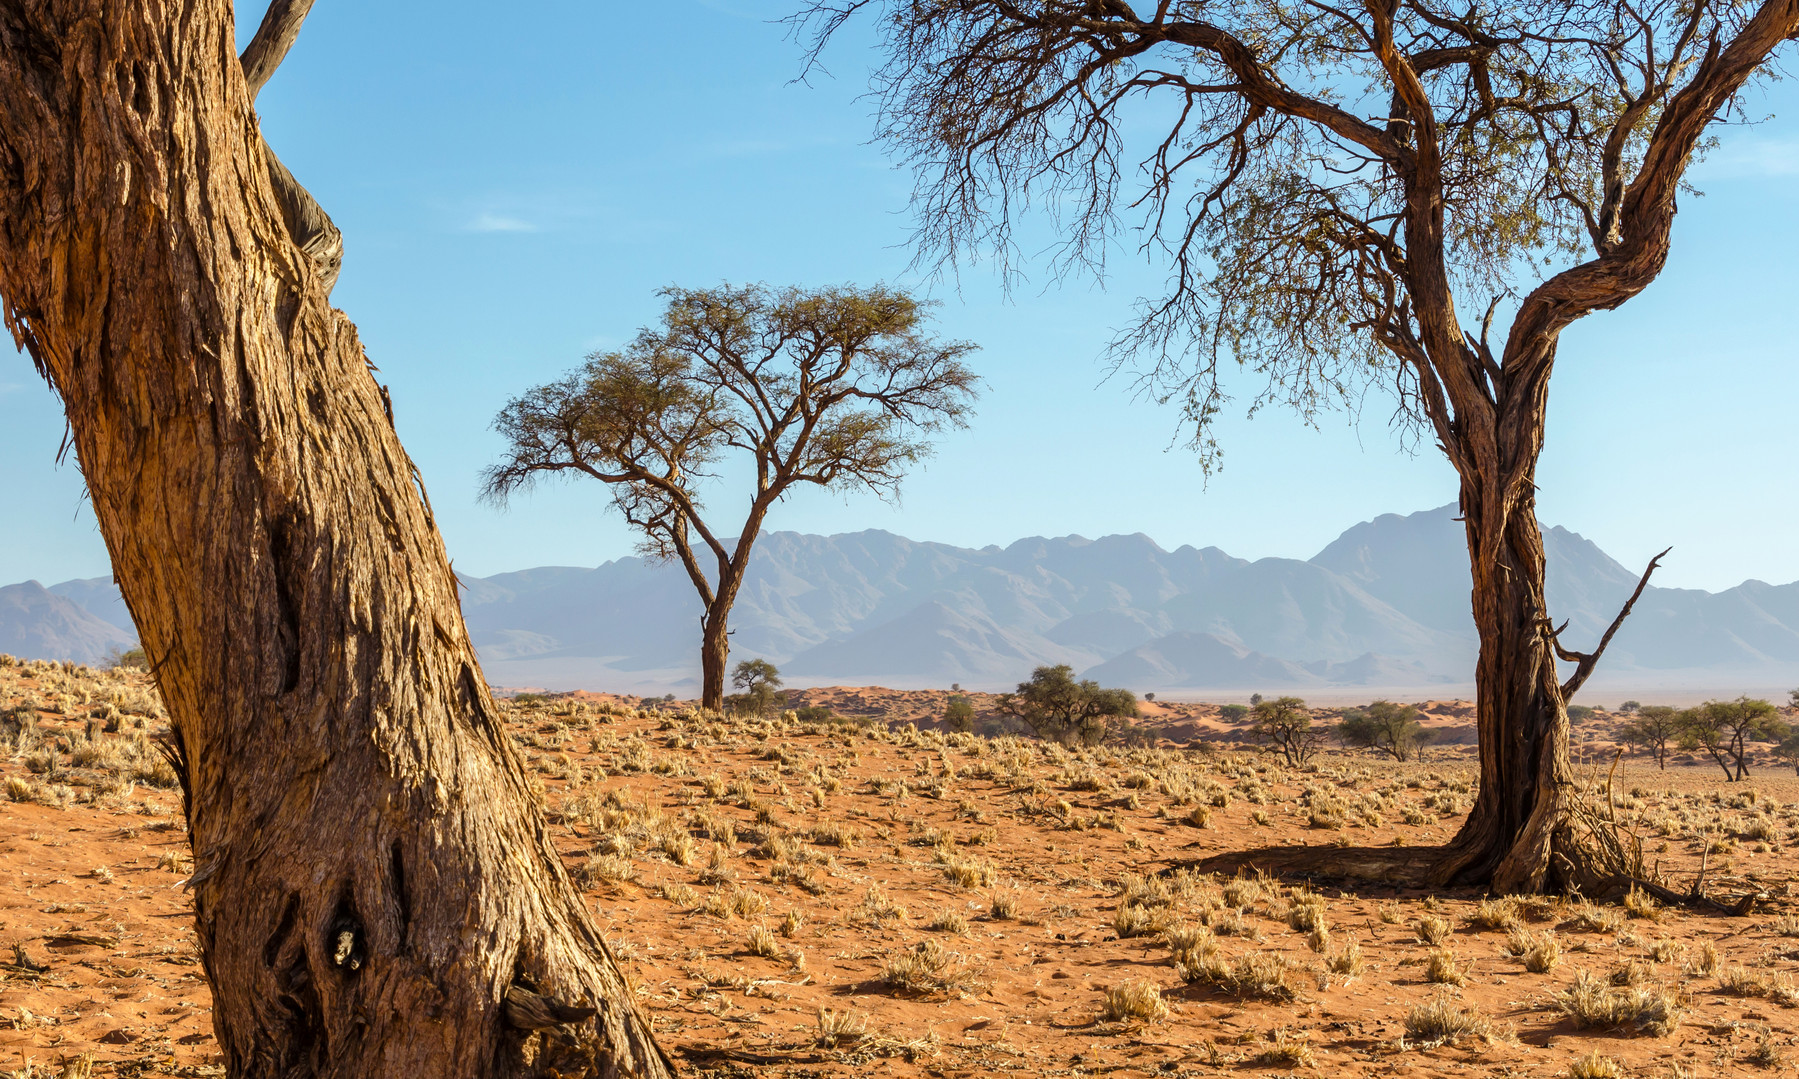 CAMELTHORN TREES